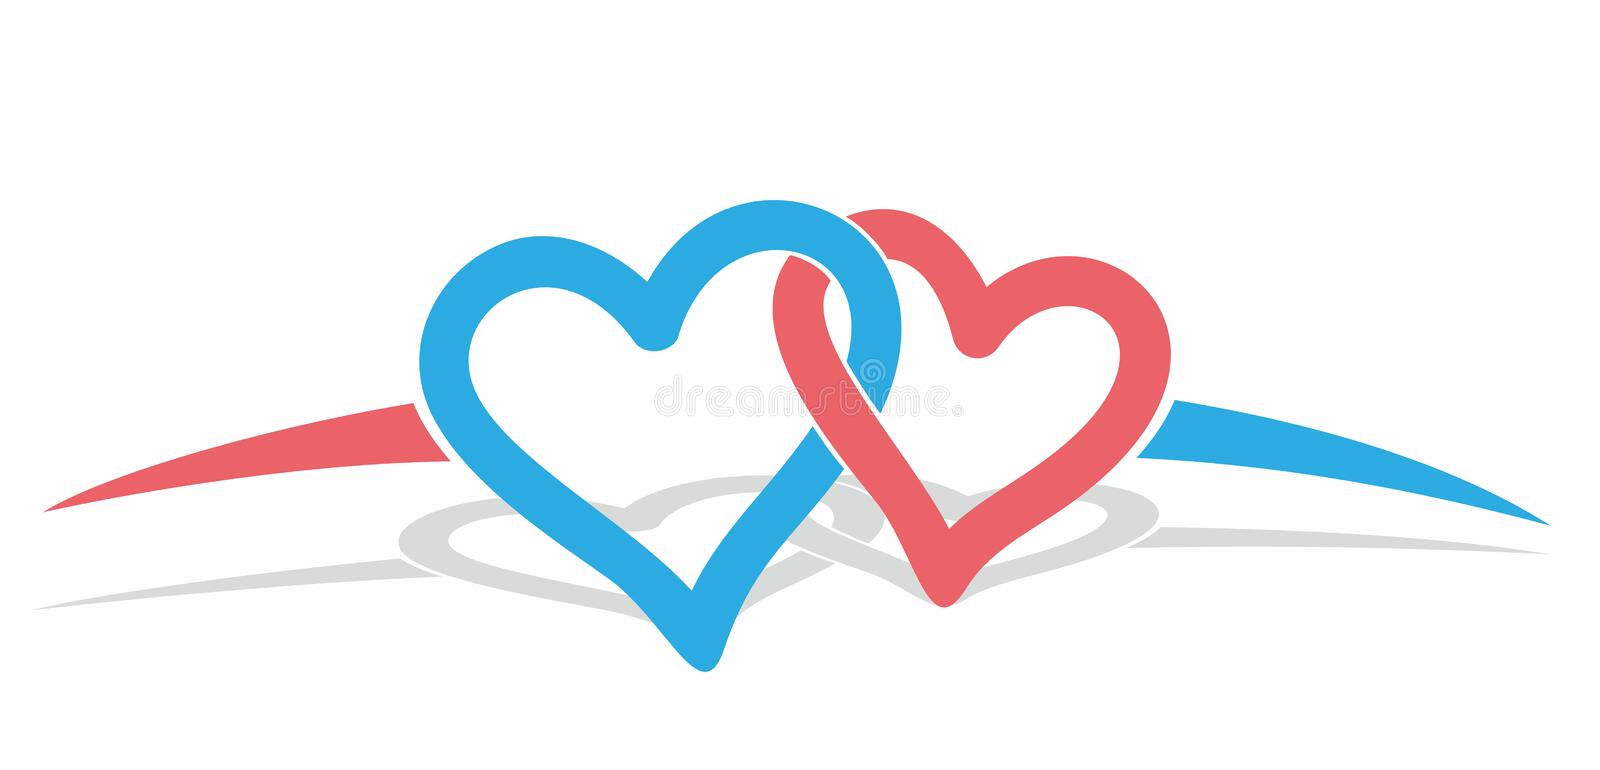 Logo color hearts. Abstract logo of color hearts stock illustration